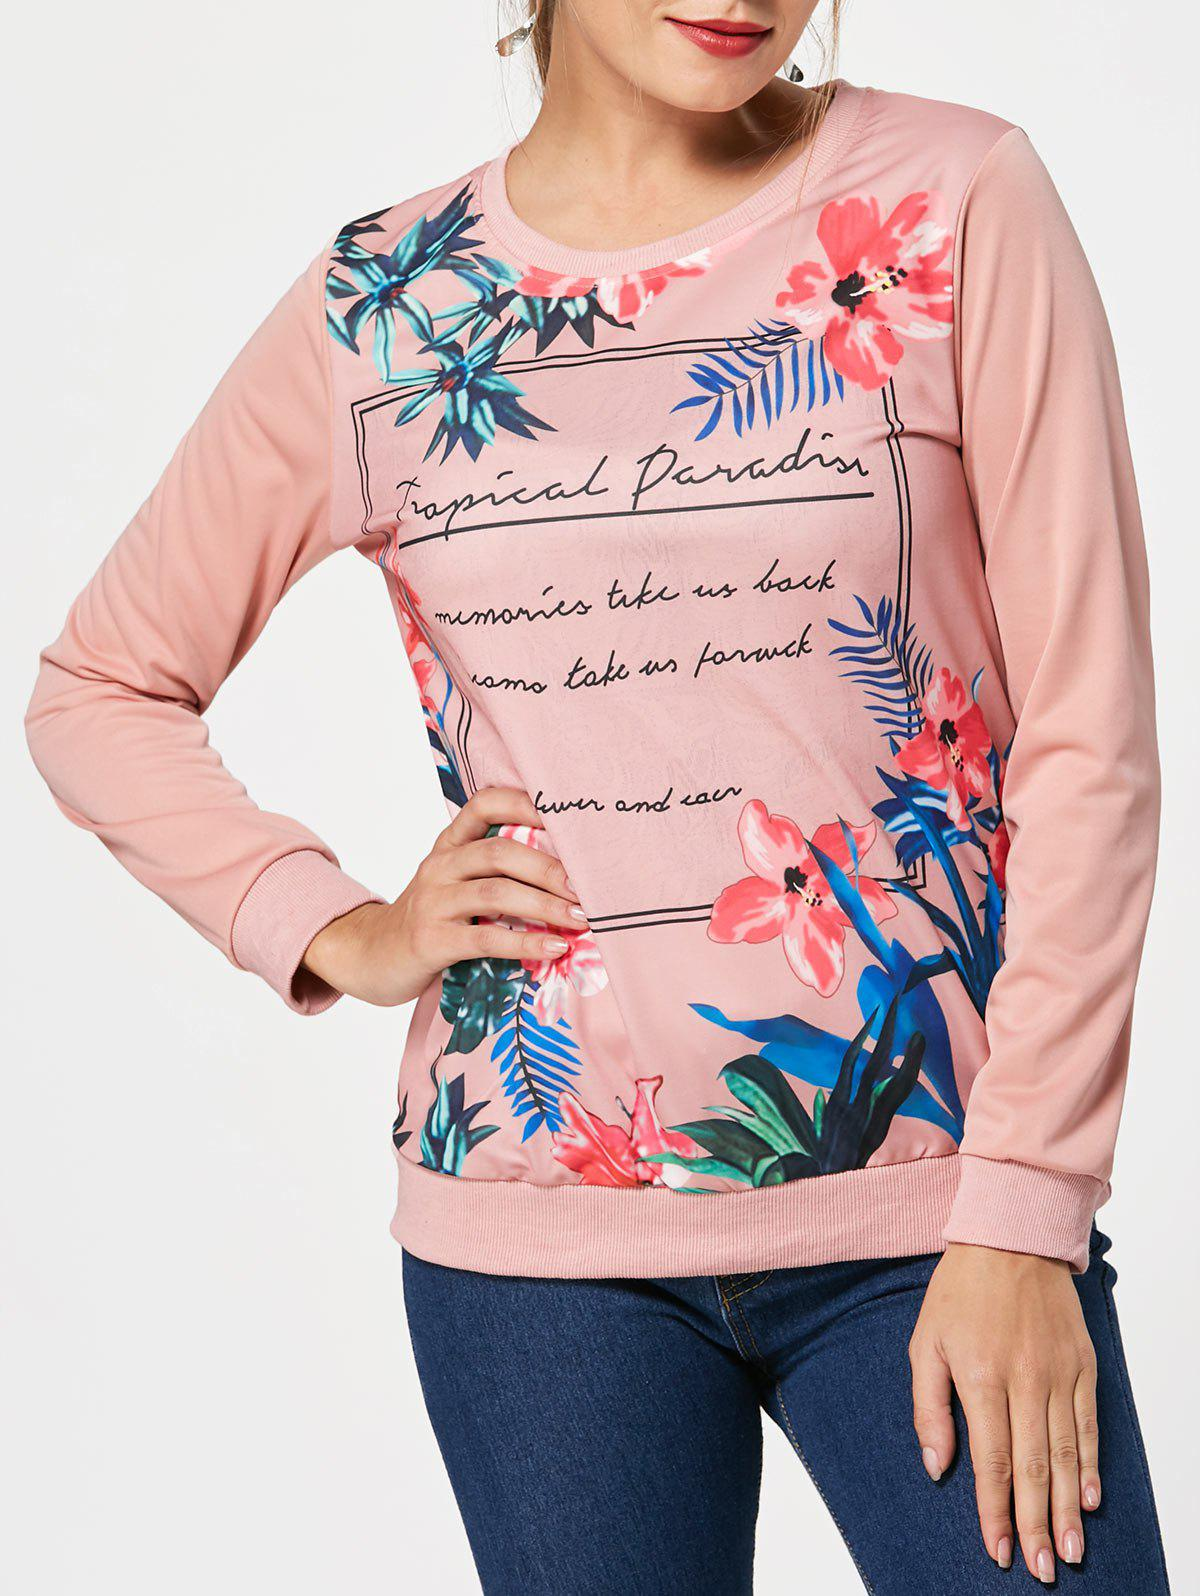 Cheap Floral Letter Print T-shirt